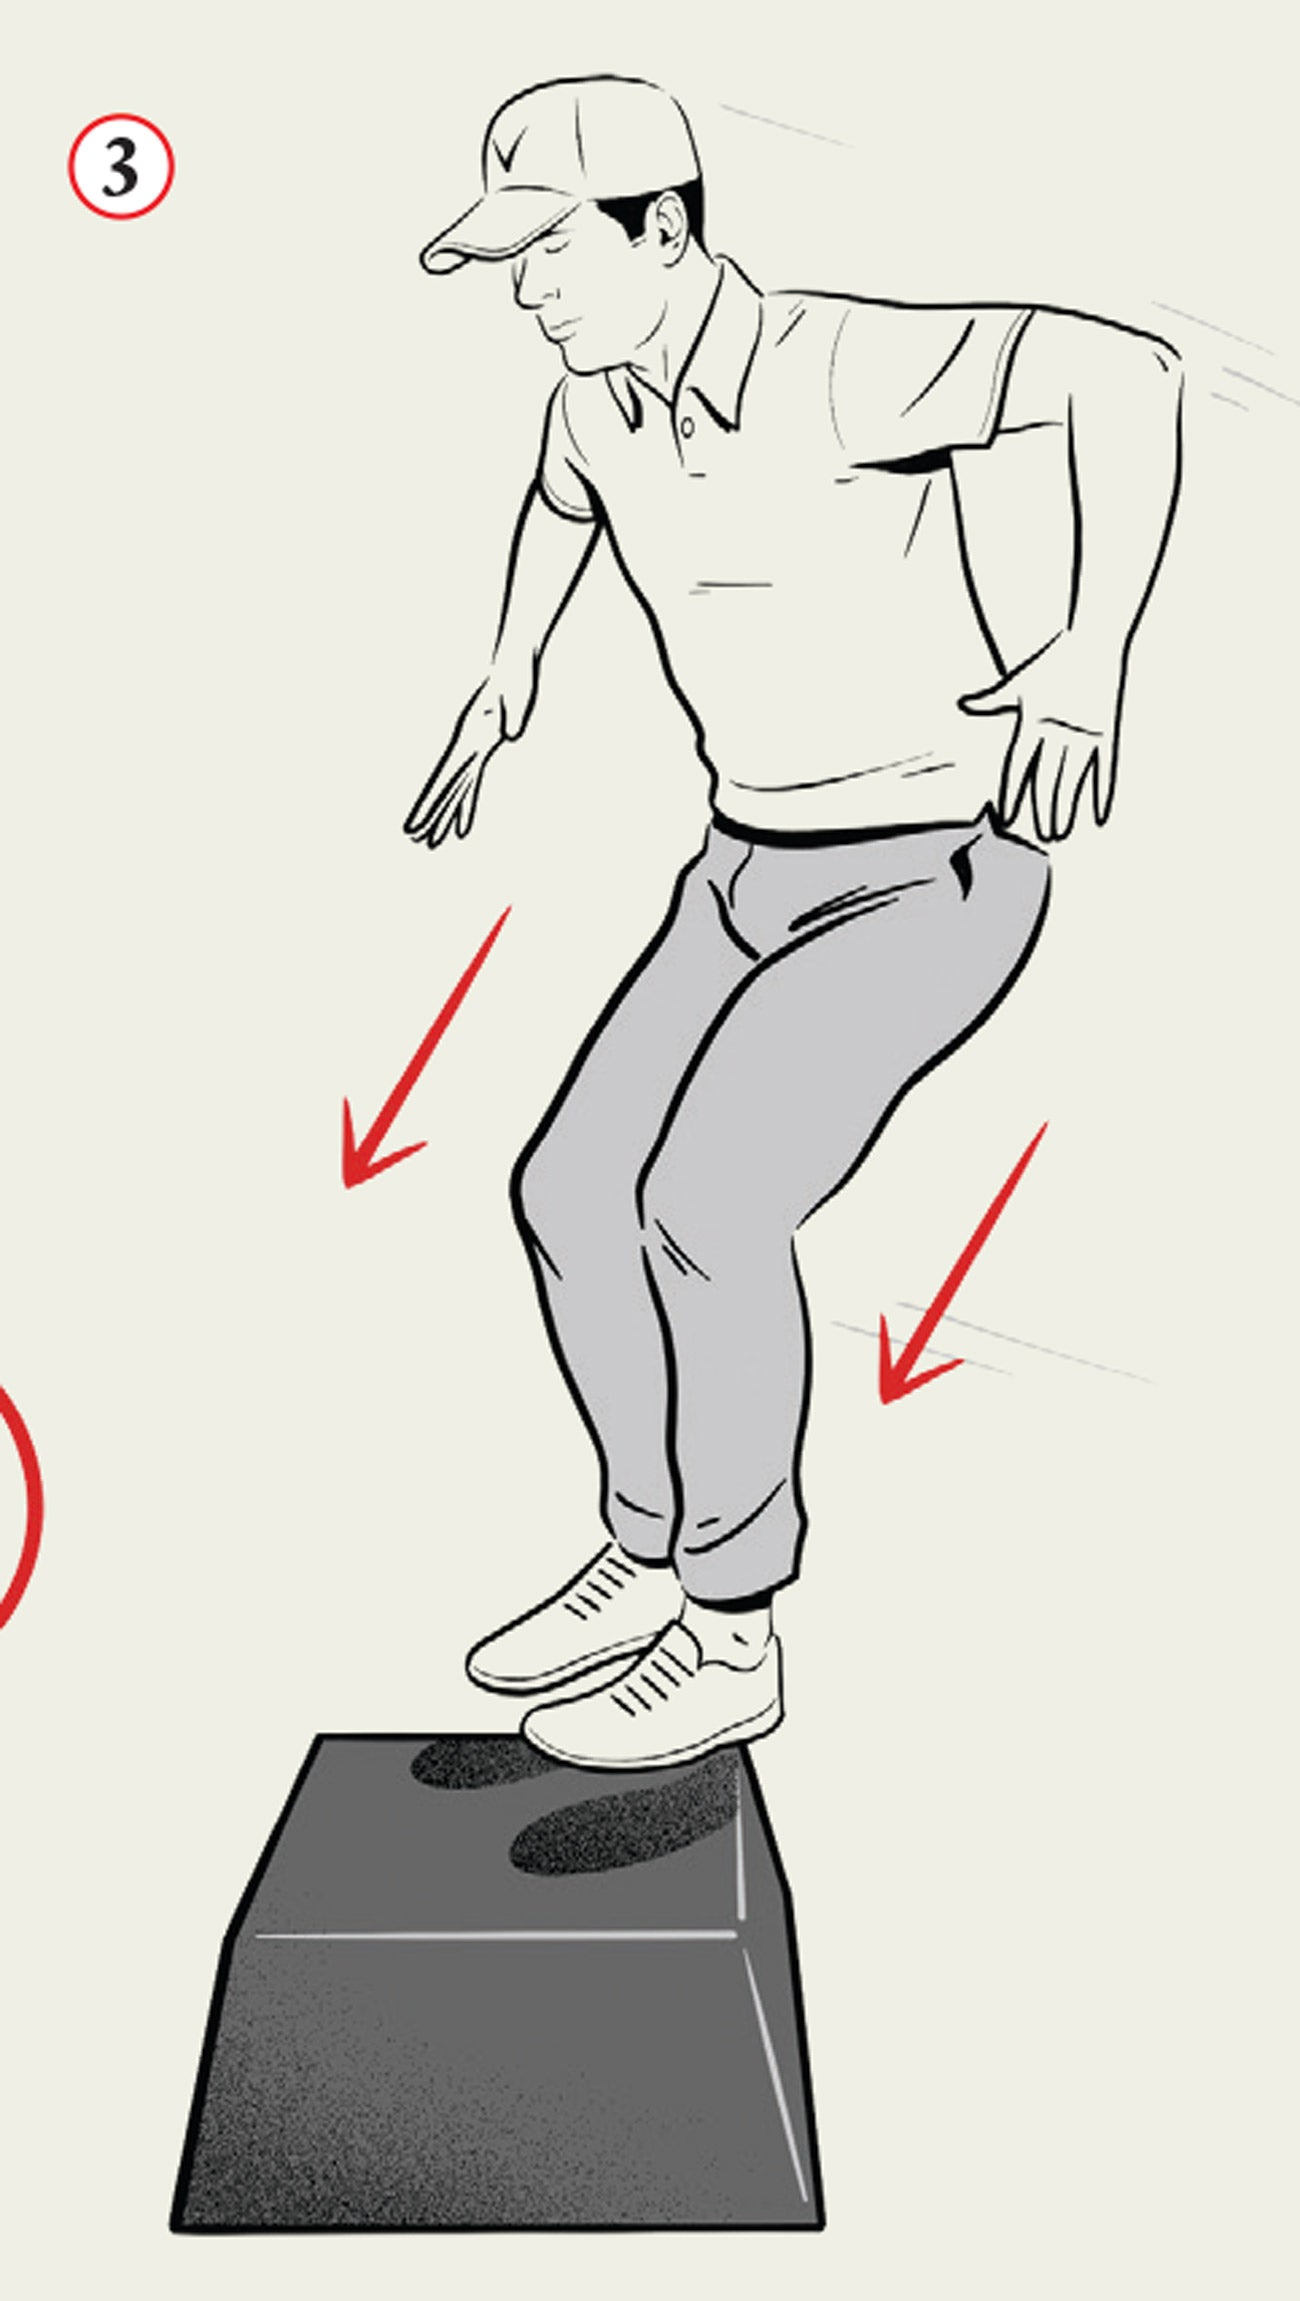 Golf Swing Power - 1 Simple Exercise for More Distance